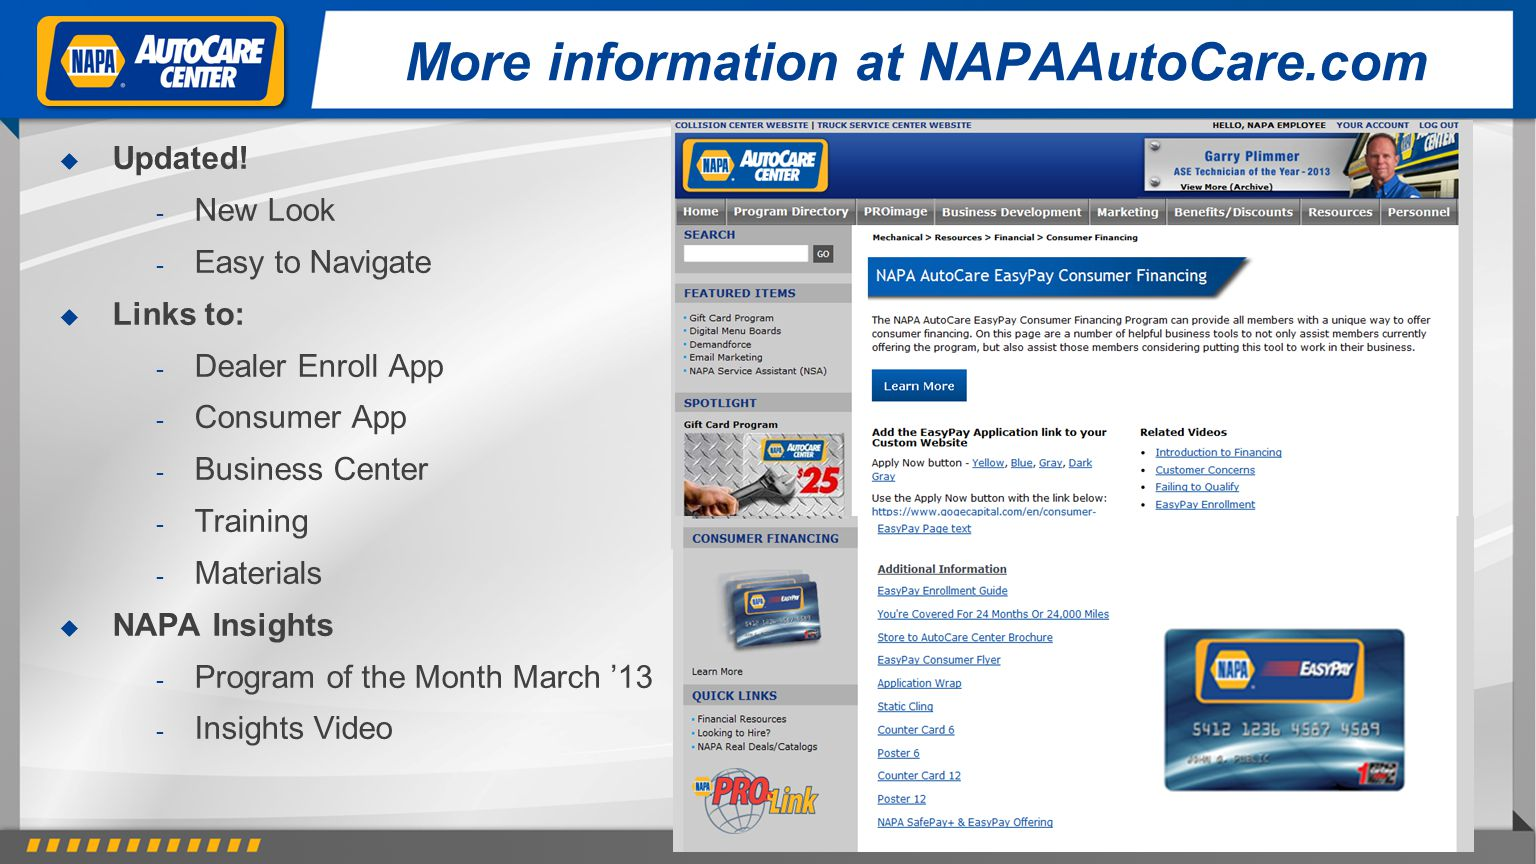 More information at NAPAAutoCare.com